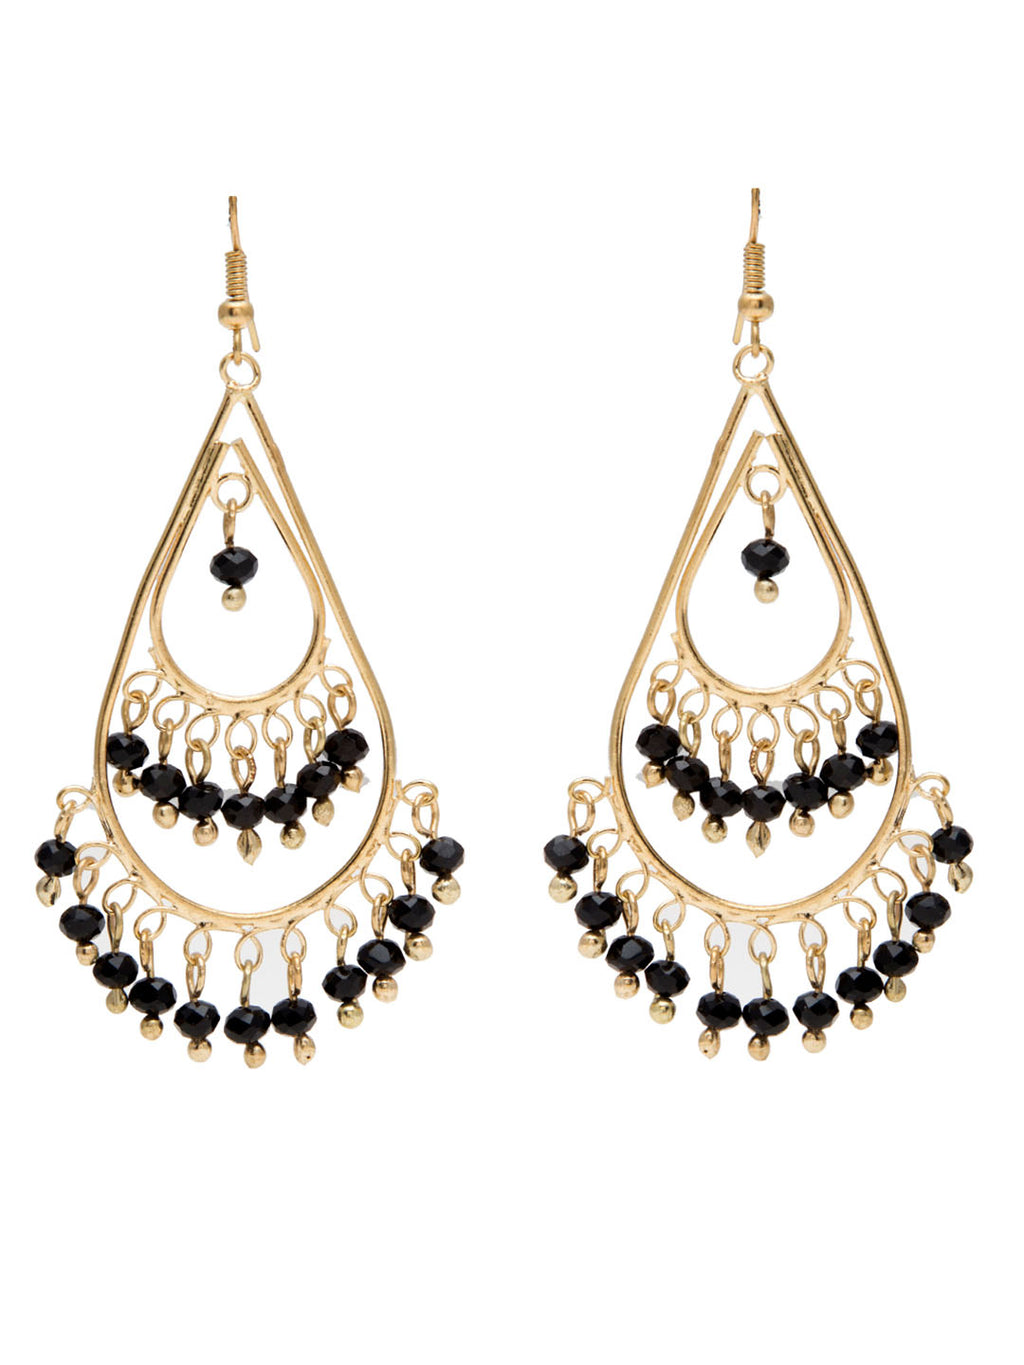 Blueberry gold plated black beads detailing drop earring